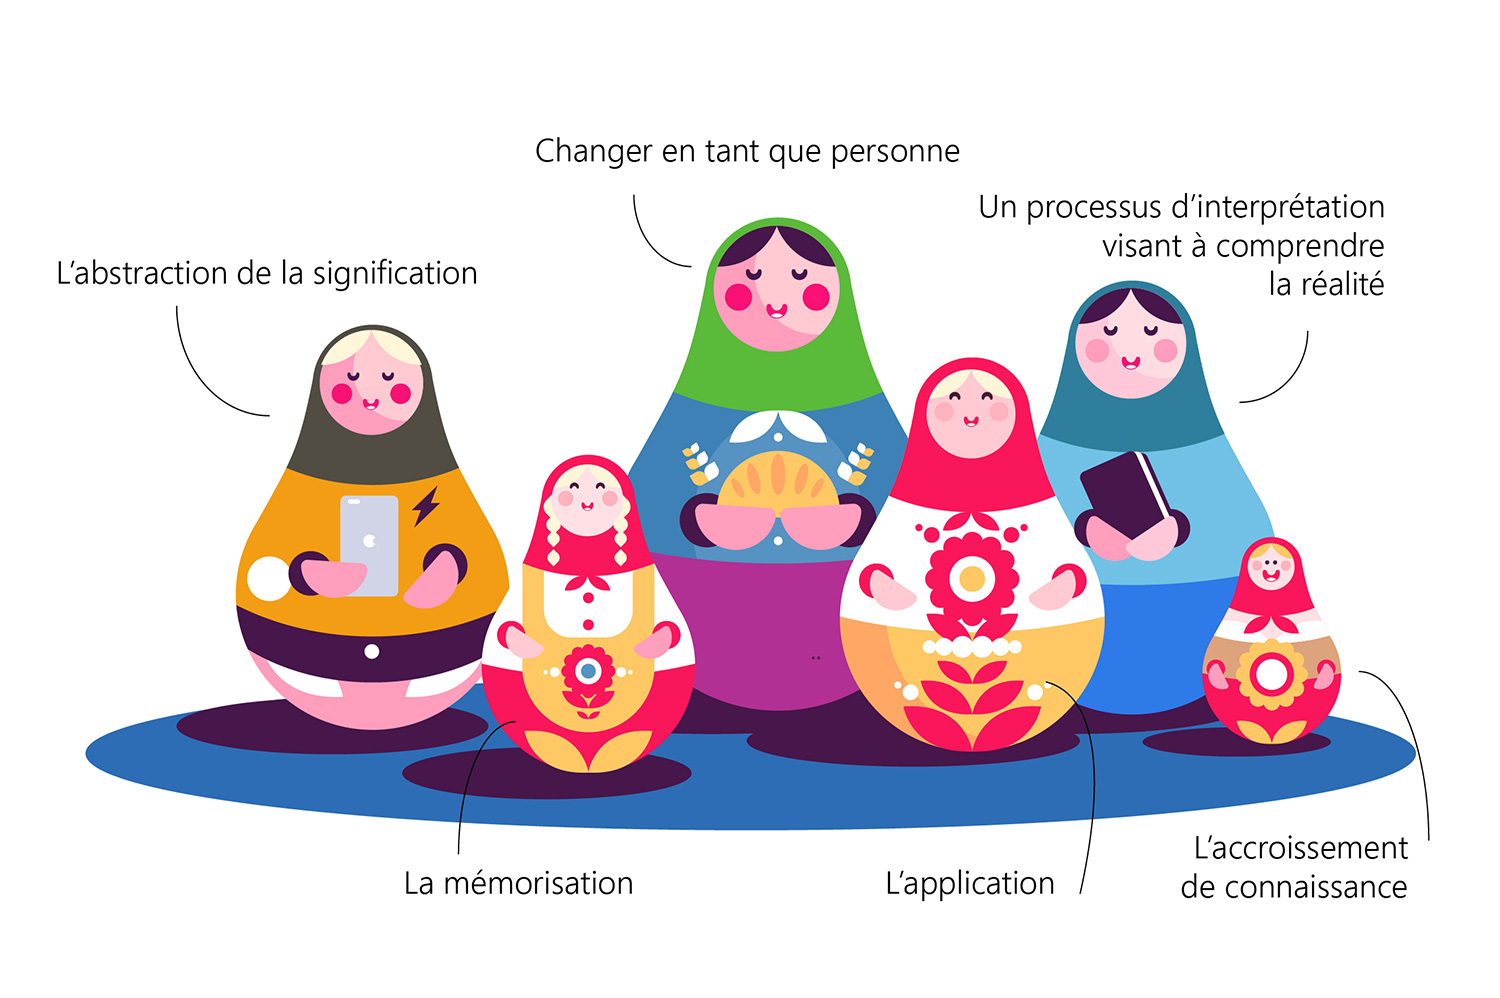 Infographic of 6 russian dolls